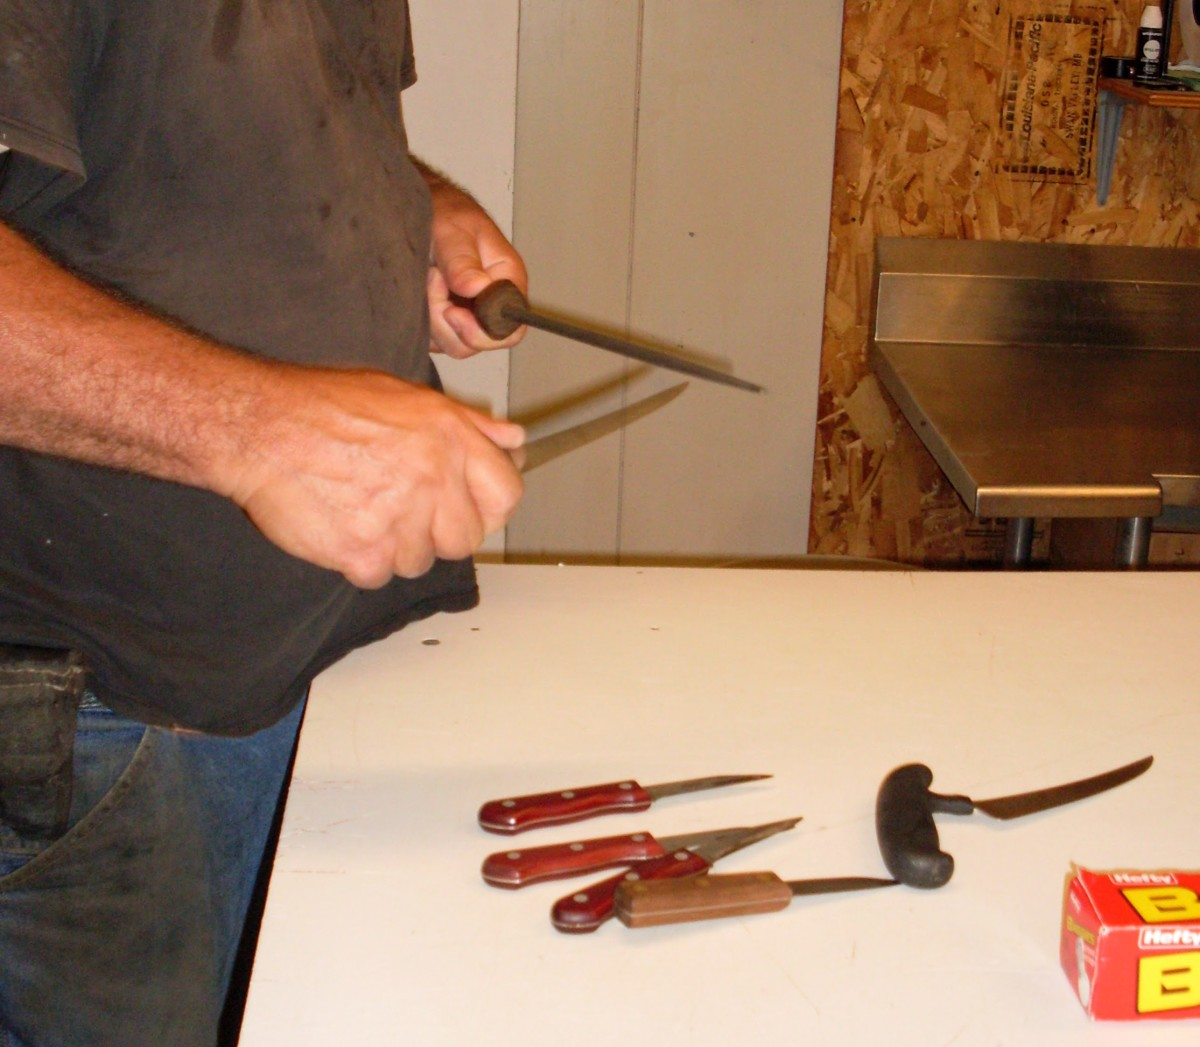 We sharpened a selection of knives, different makes and sizes for different hands and jobs.